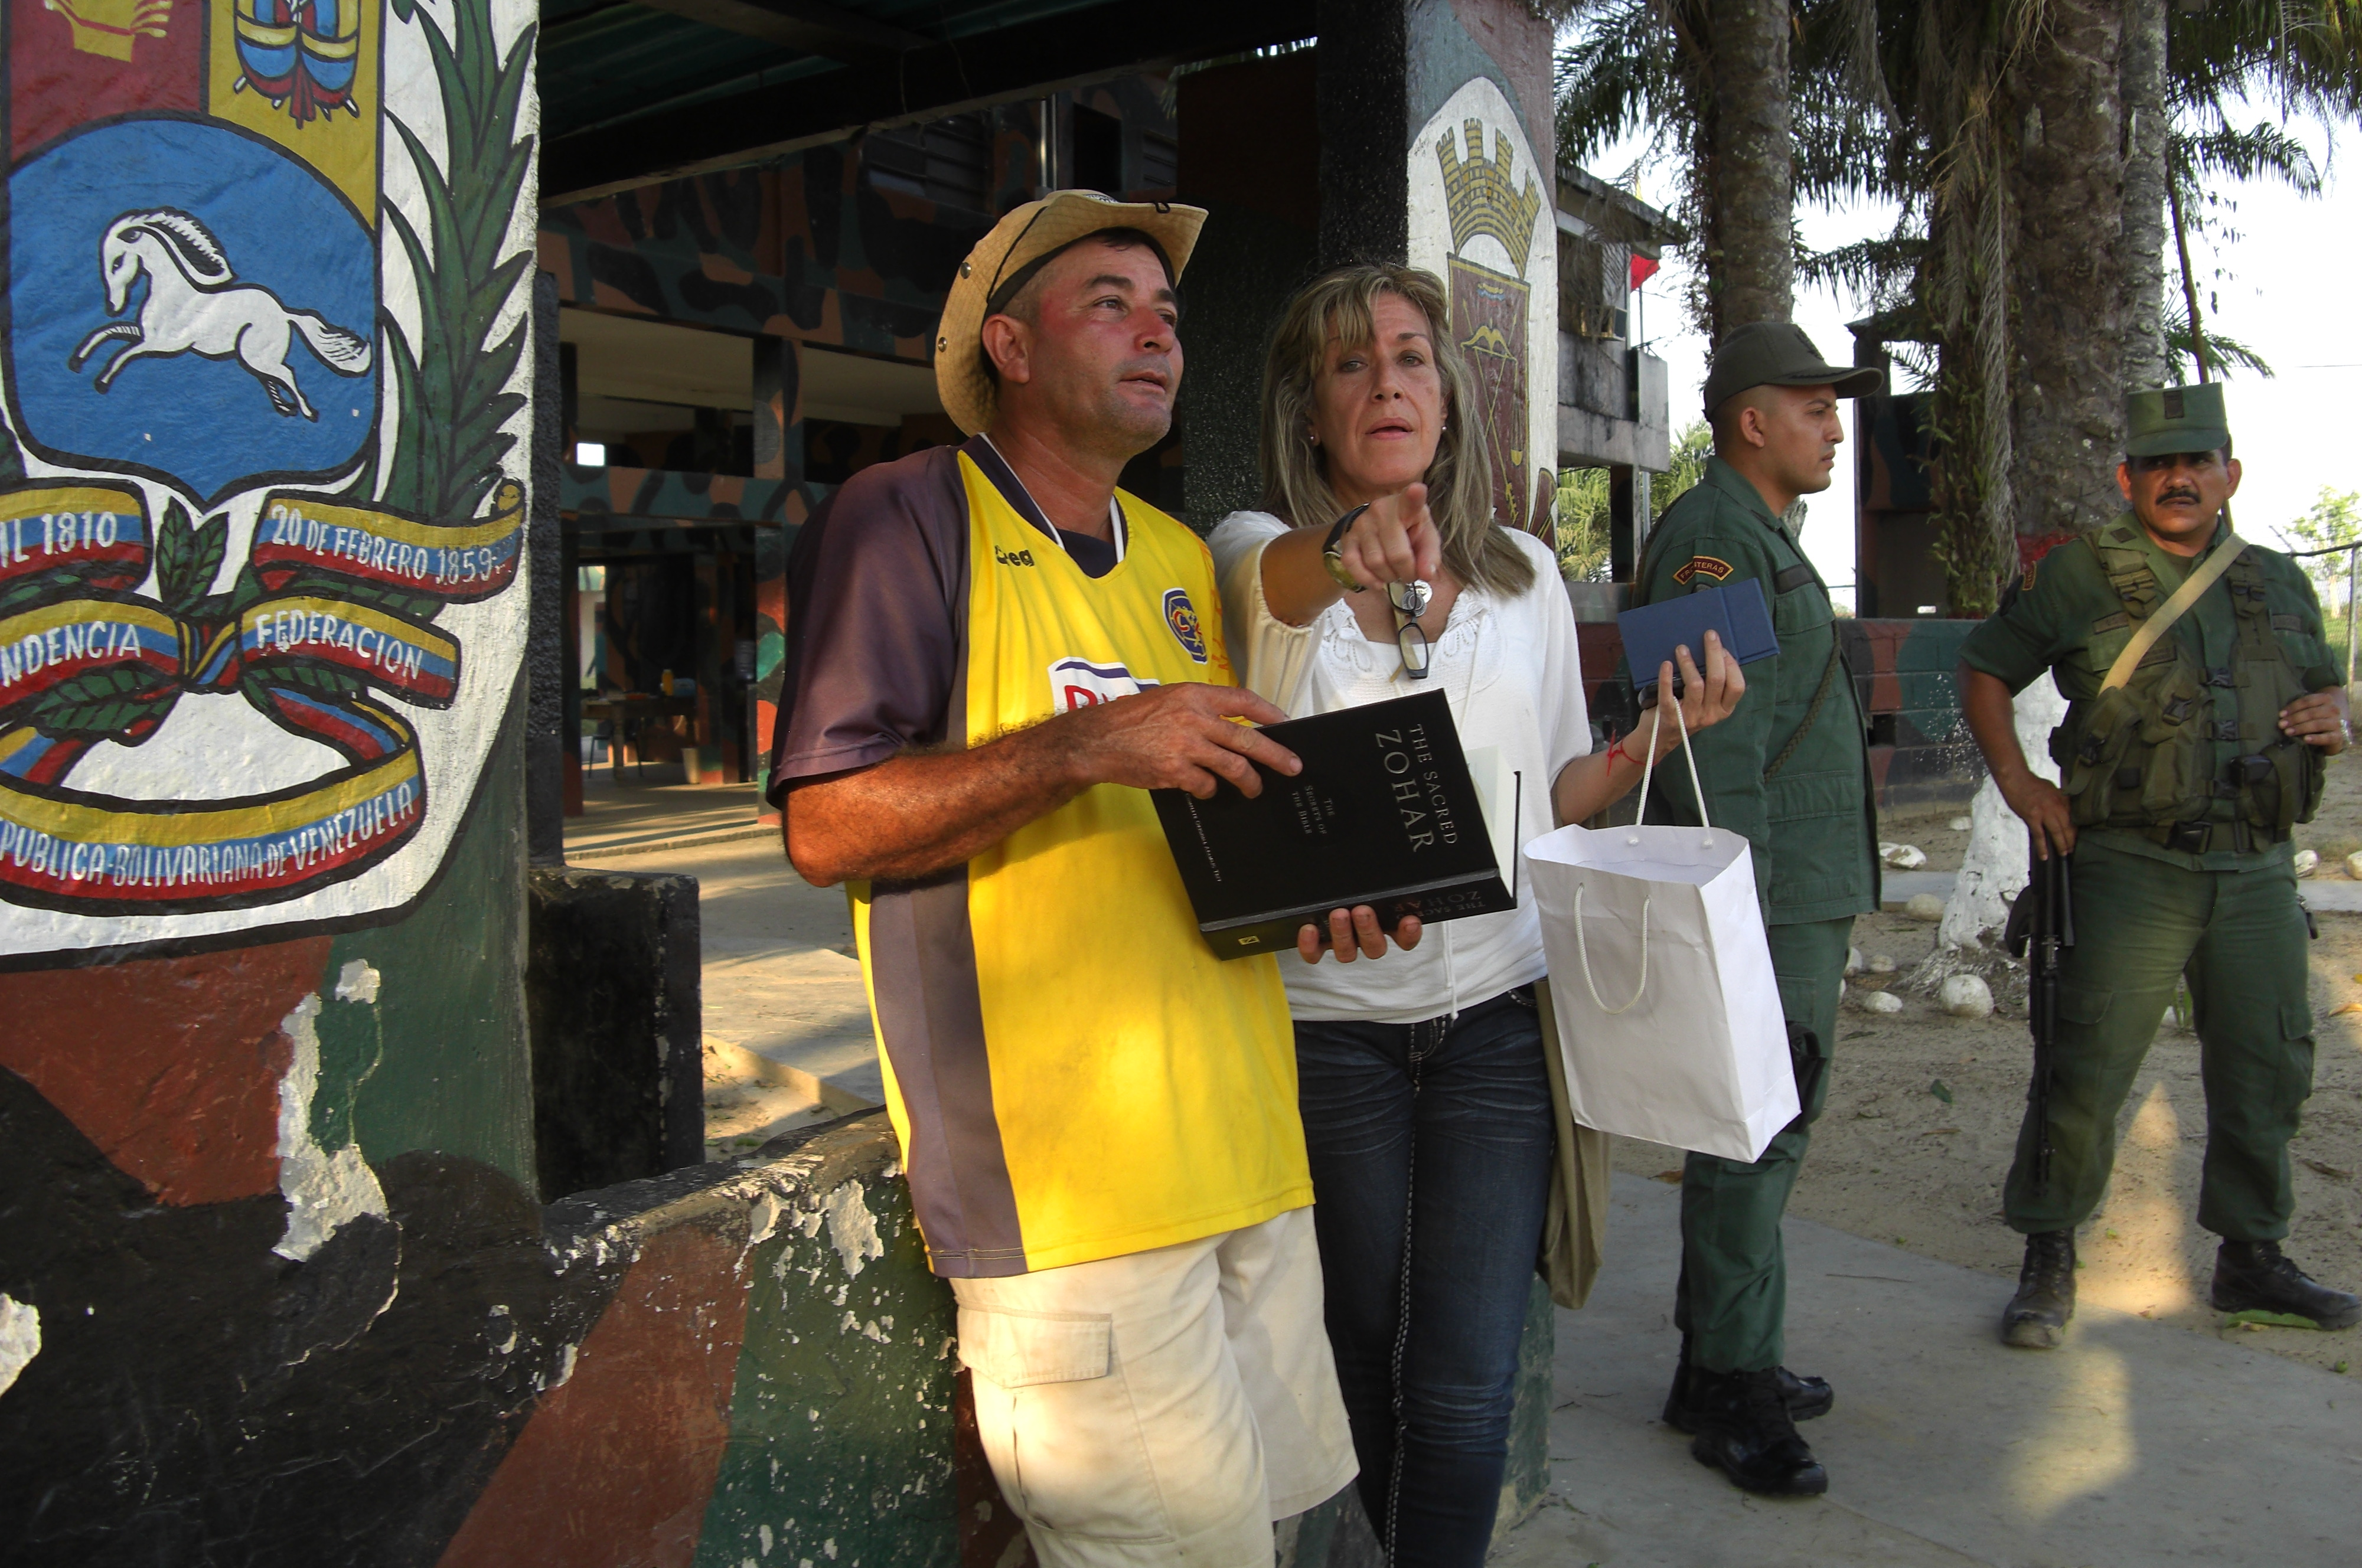 A Kabbalah Centre volunteer shares a Zohar near the Colombia/Venezuela border as policemen look on